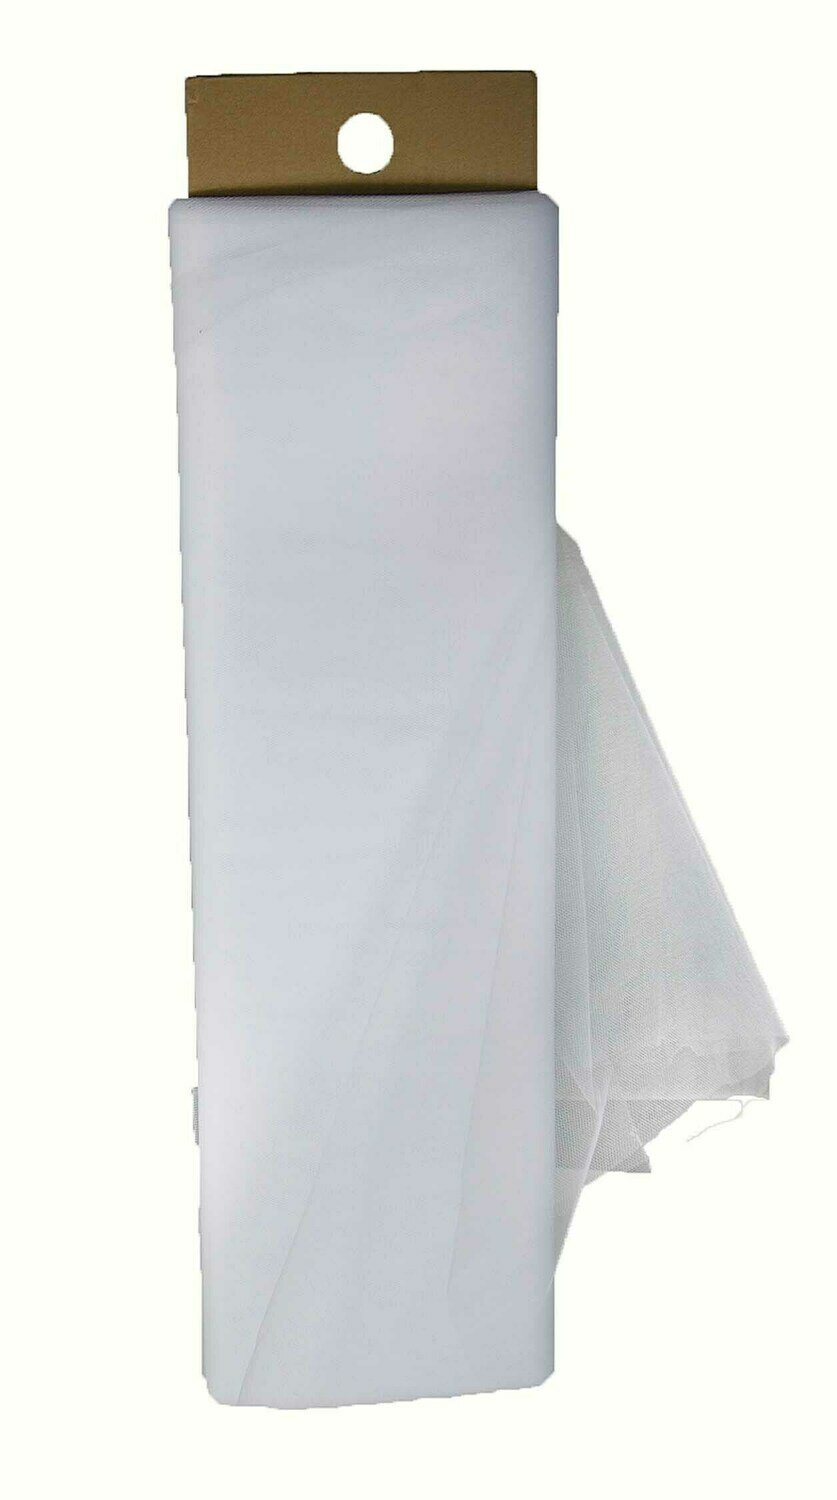 ​1366WT -54 x 40 yards Ivory Tulle Roll $16.95 each Minimum: 1 pc Case Pack: 12 pcs